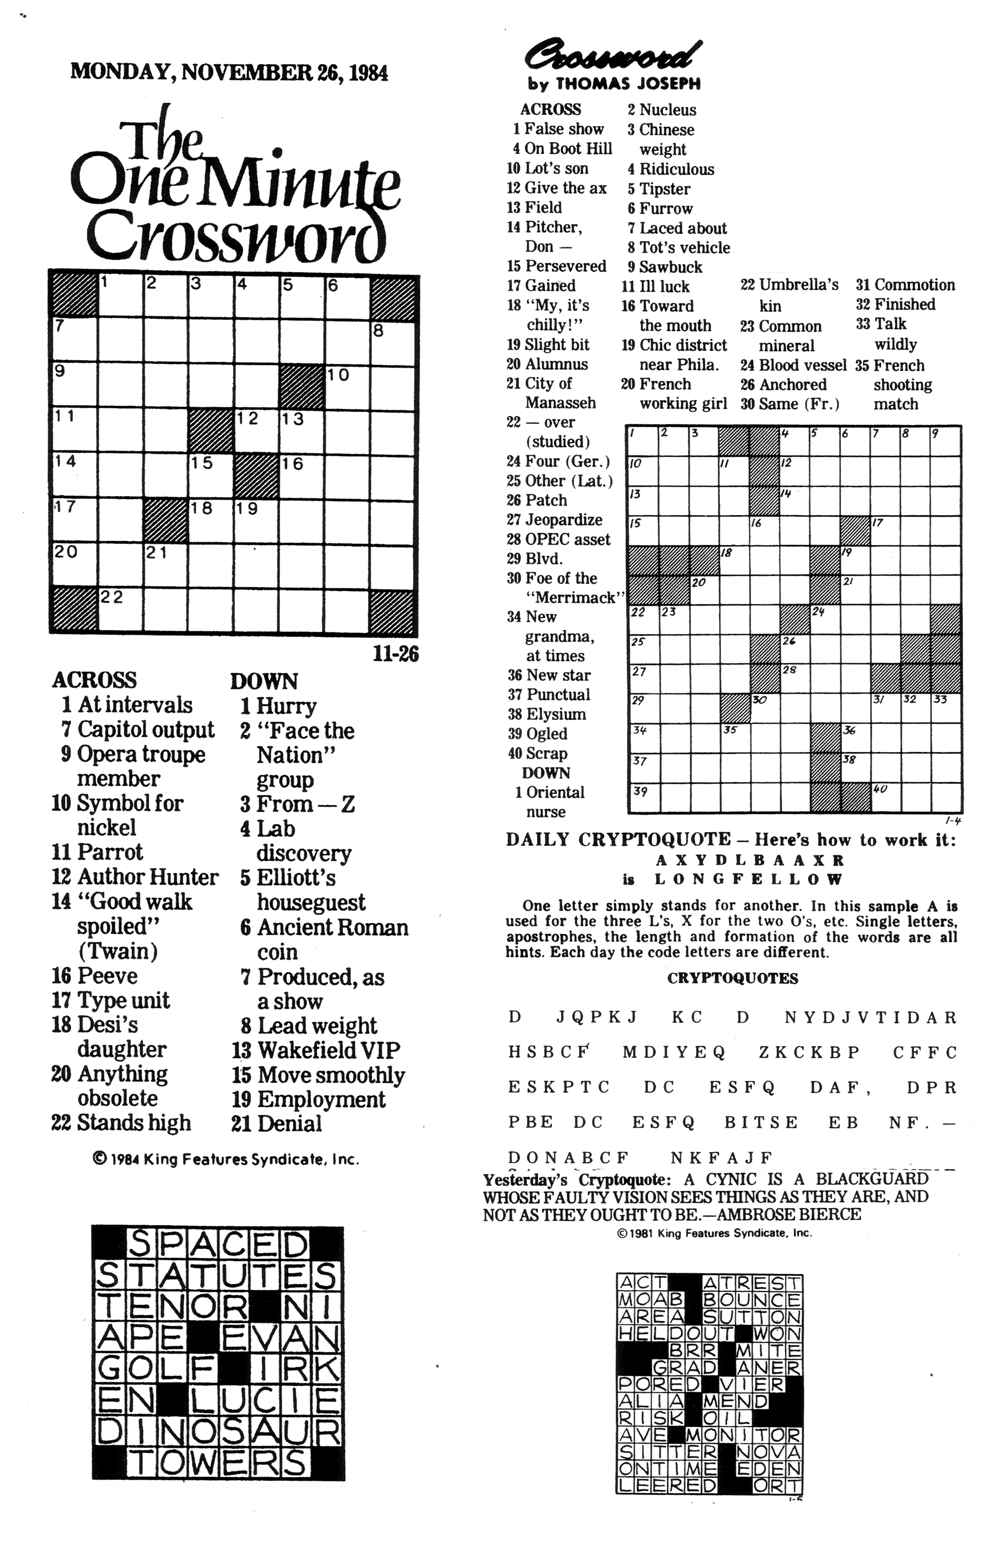 photograph relating to Thomas Joseph Printable Crosswords called Comics Kingdom - Request the Archivist: CROSSWORD PUZZLES - 2015